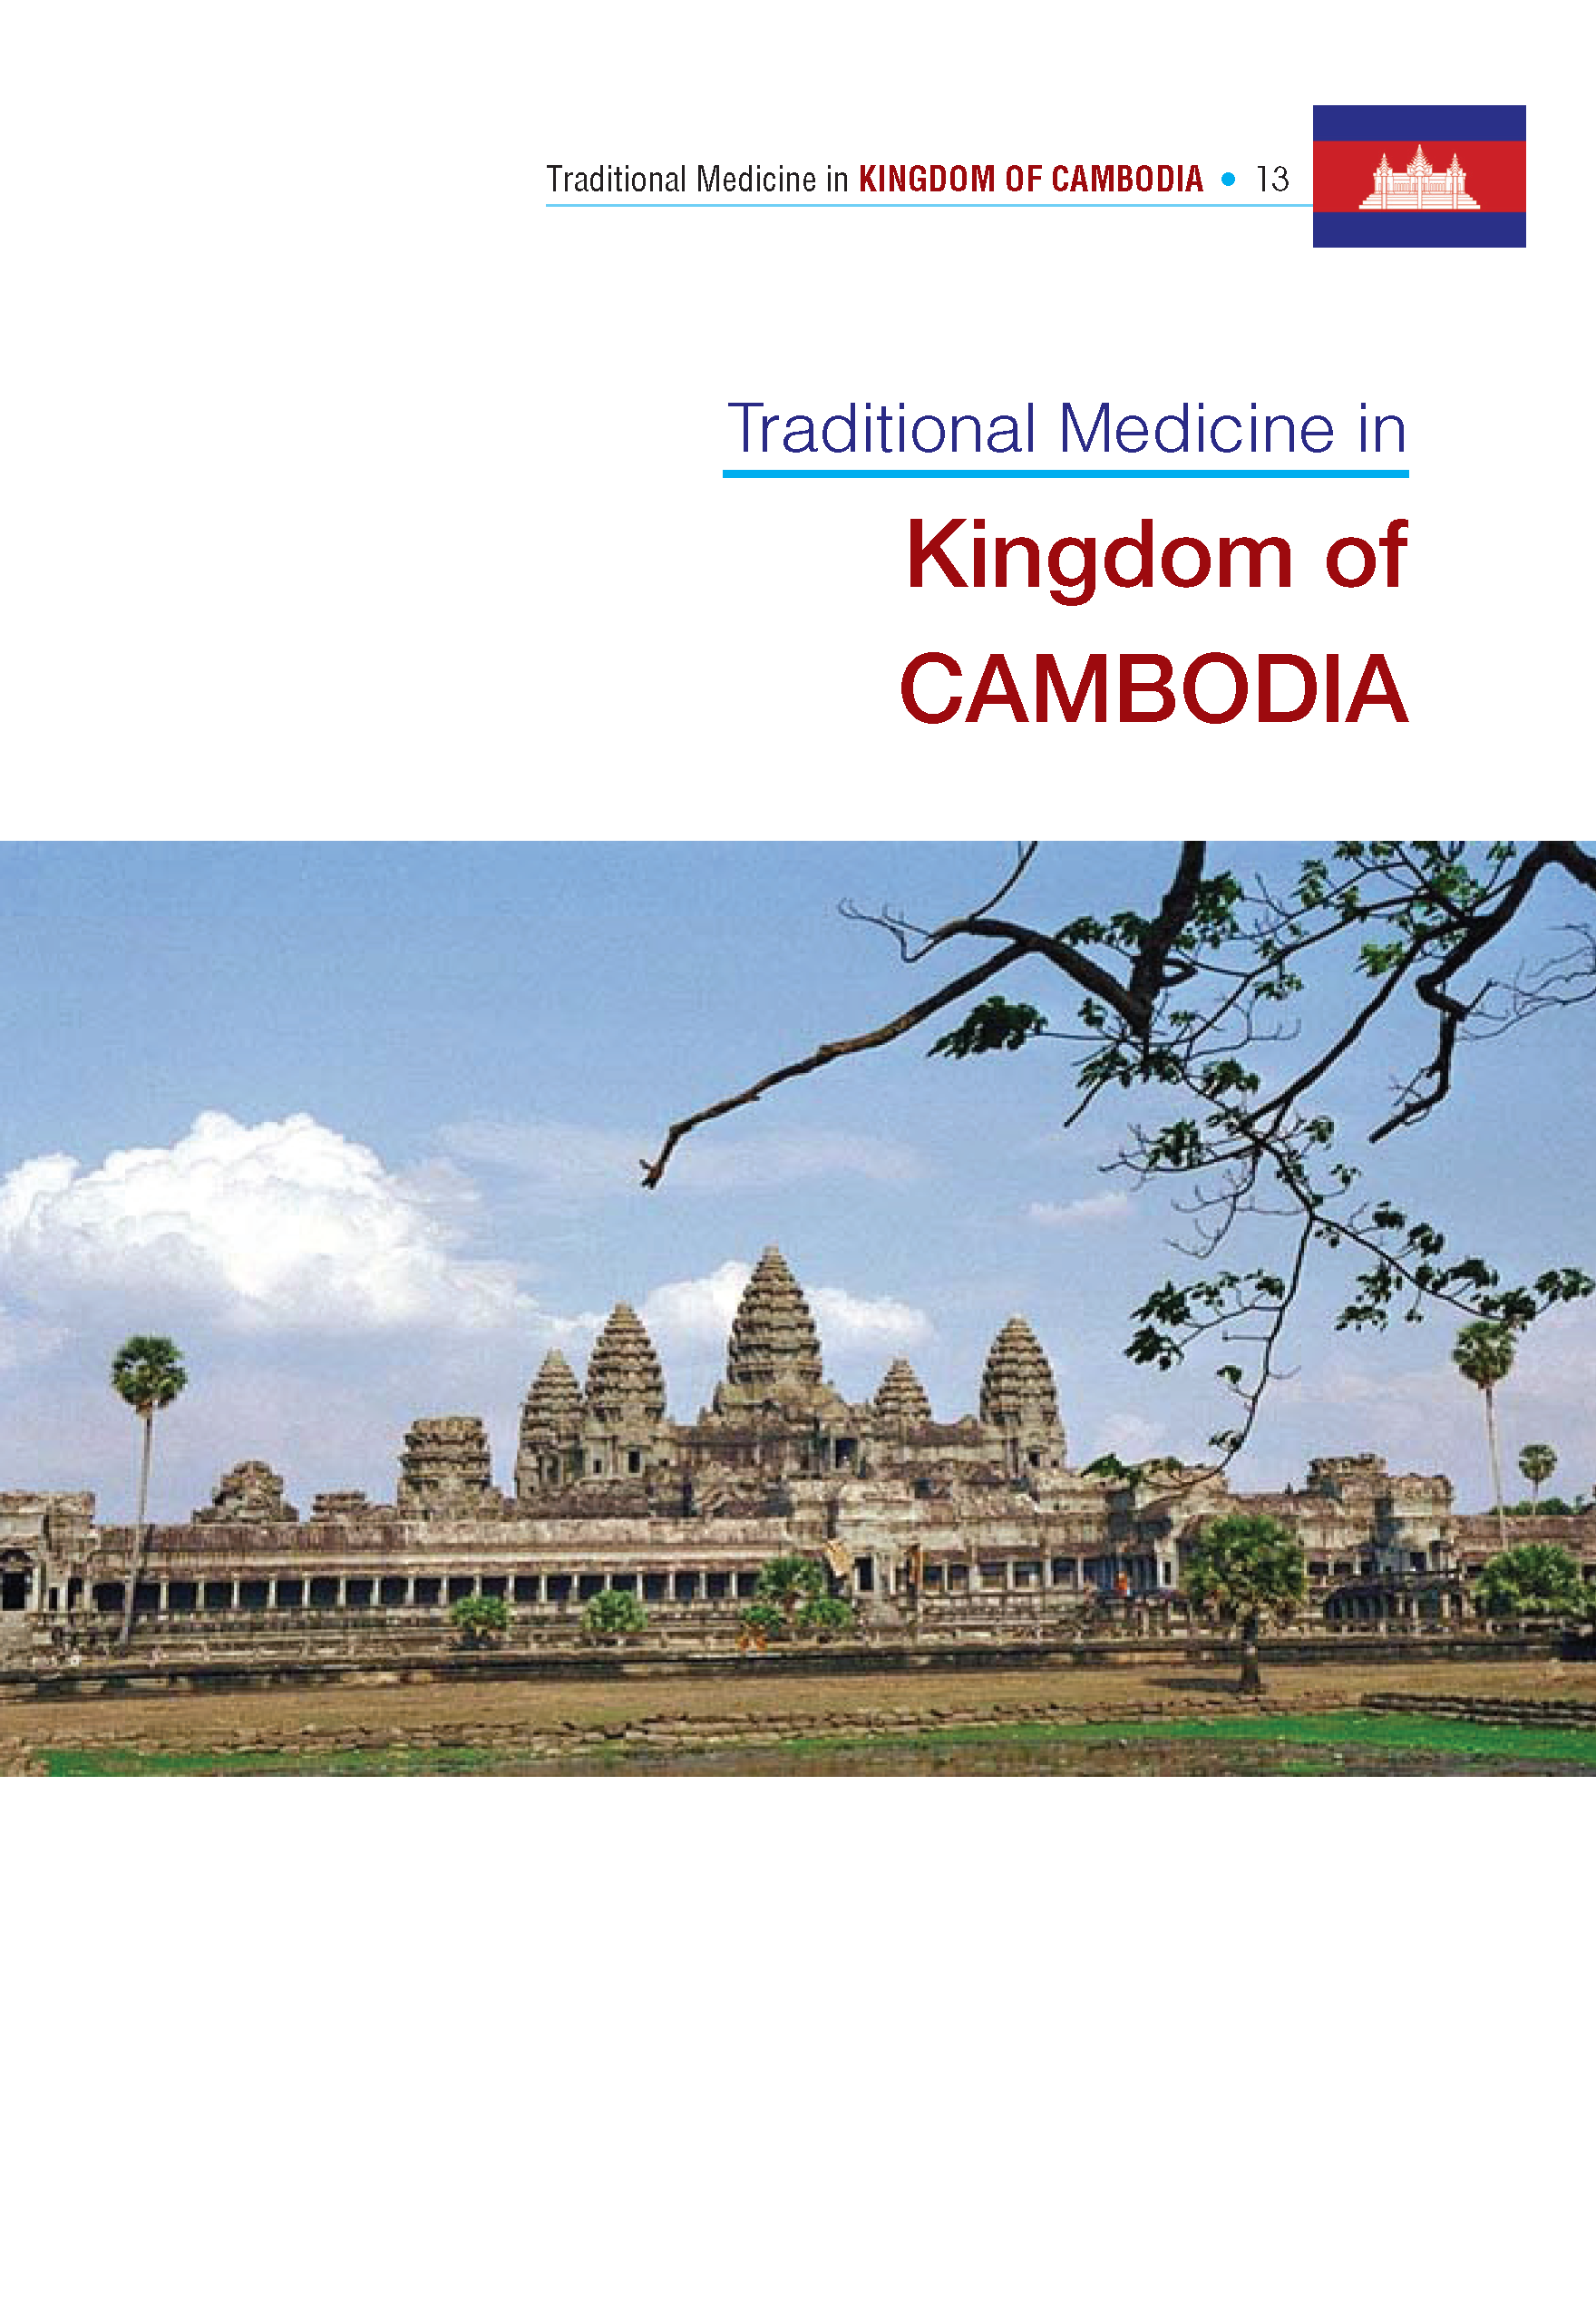 Traditional.Medicine.Cambodia_Page_01.png